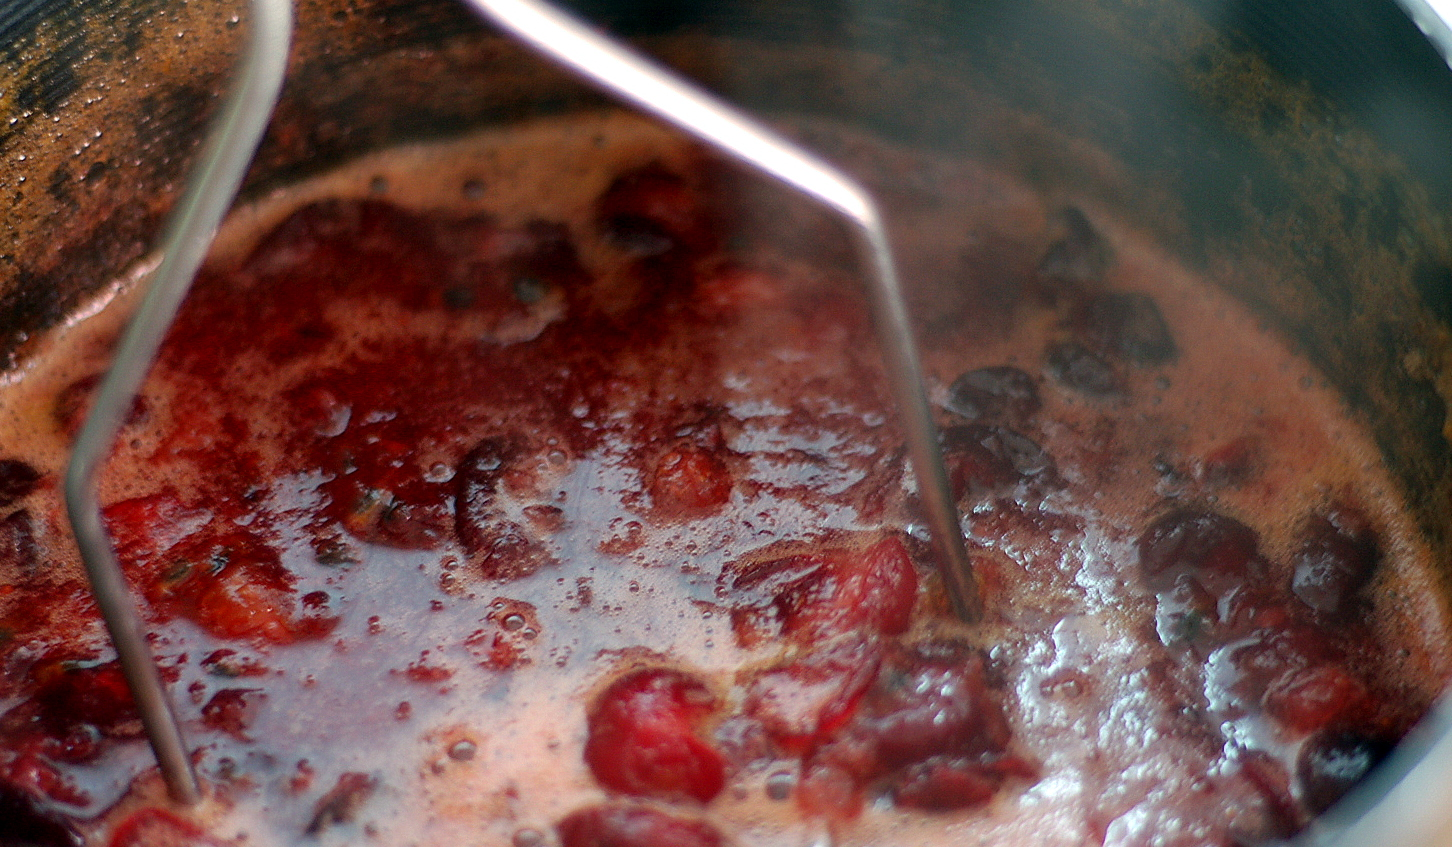 The Grains of Paradise: Hawaiian Cranberry-Passion Fruit Sauce